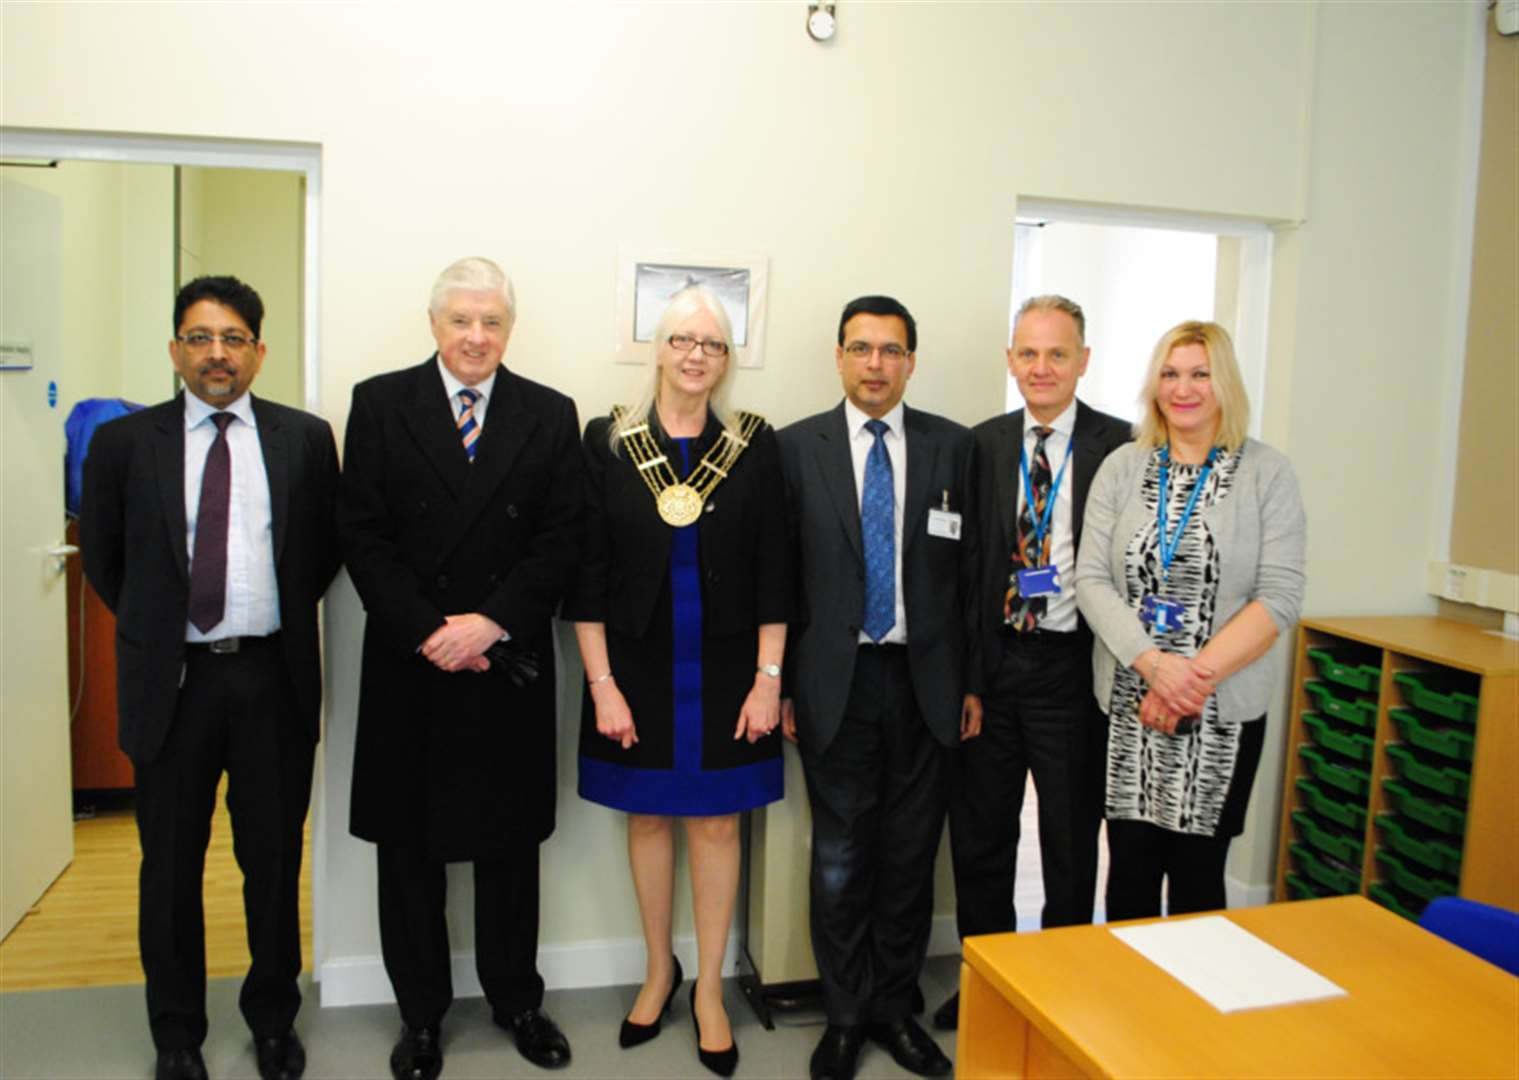 Grantham Journal column: Opening of new eye unit is a very positive development